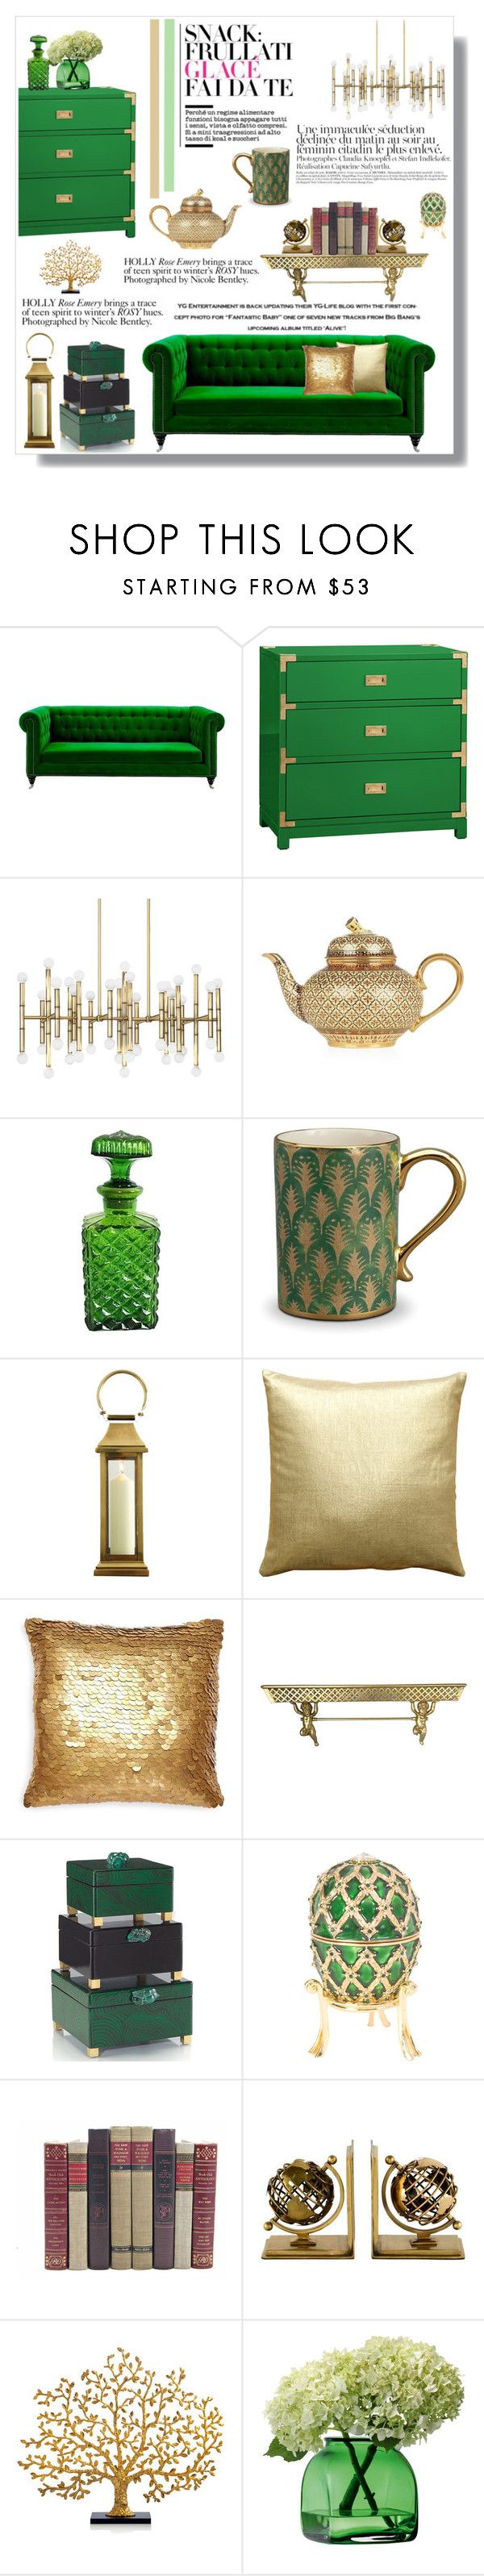 """""""Green and Gold"""" by doltshey ❤ liked on Polyvore featuring interior, interiors, interior design, home, home decor, interior decorating, Wild Rose, Bungalow 5, Jonathan Adler and L'Objet"""